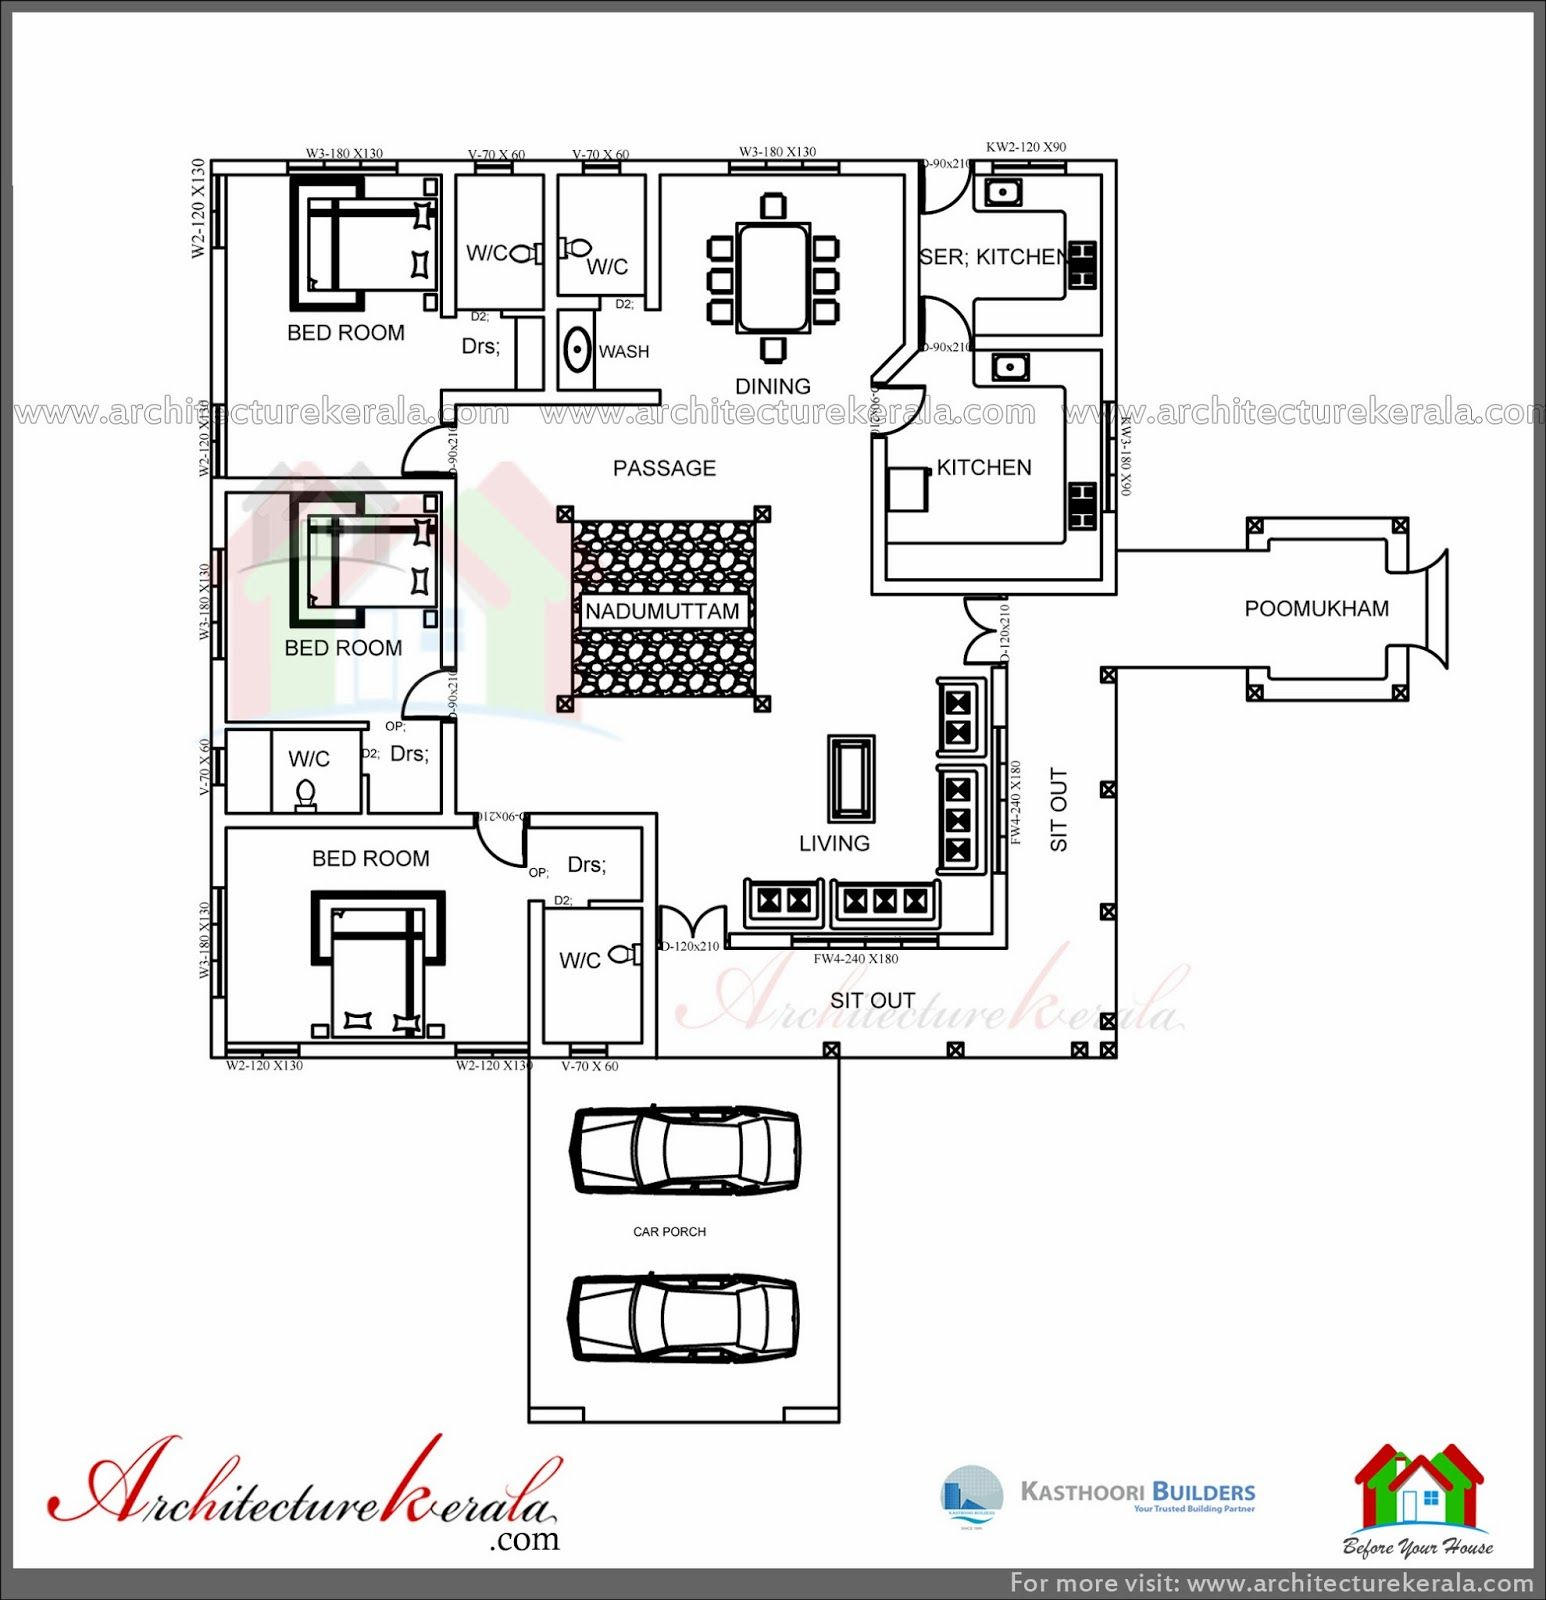 Architecture kerala traditional house plan with for Classic cottage plans